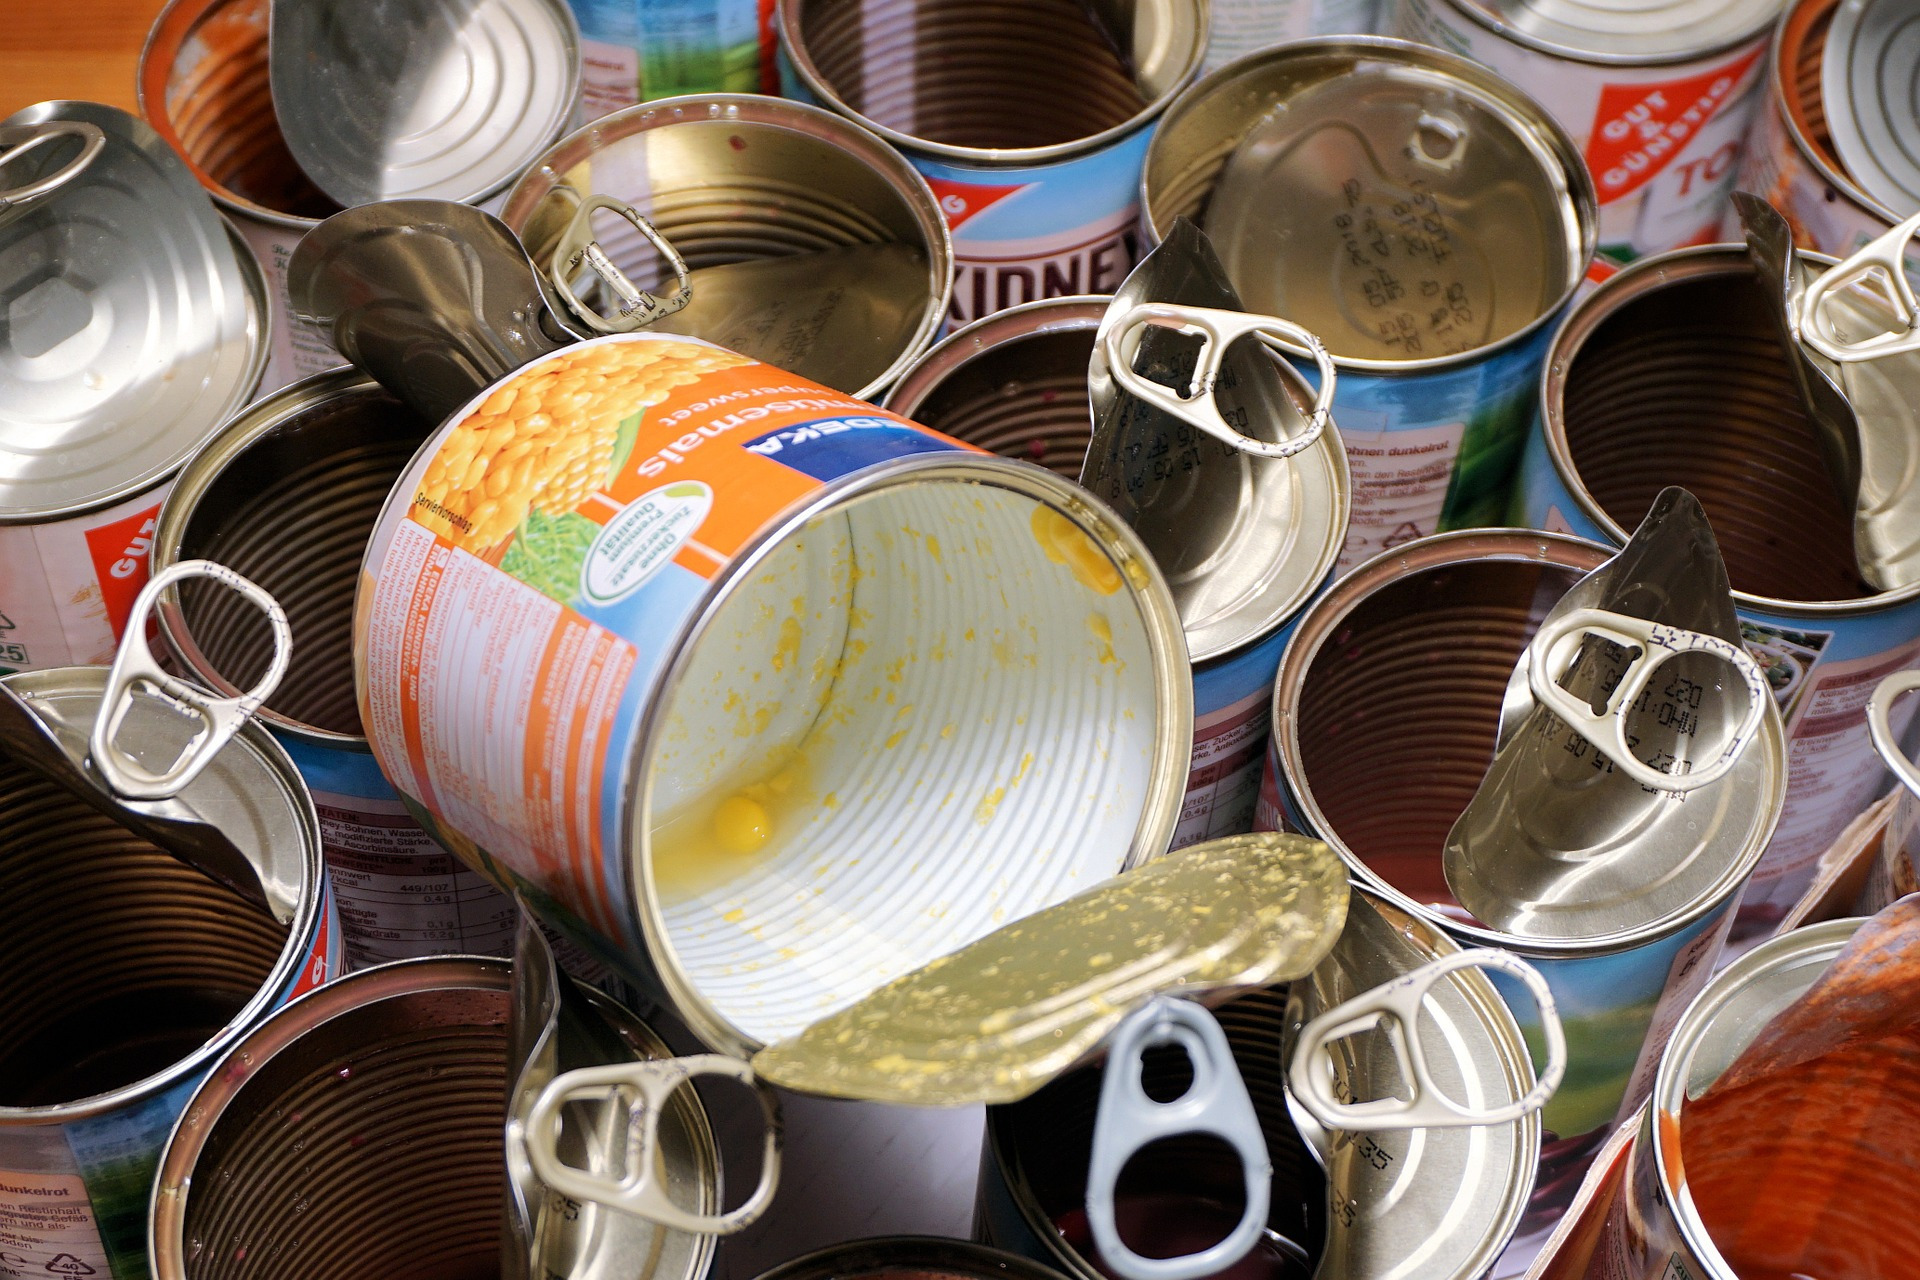 Maybe That Bpa In Your Canned Food Isnt >> Canned Goods Become A Toxic Chemical Tracker